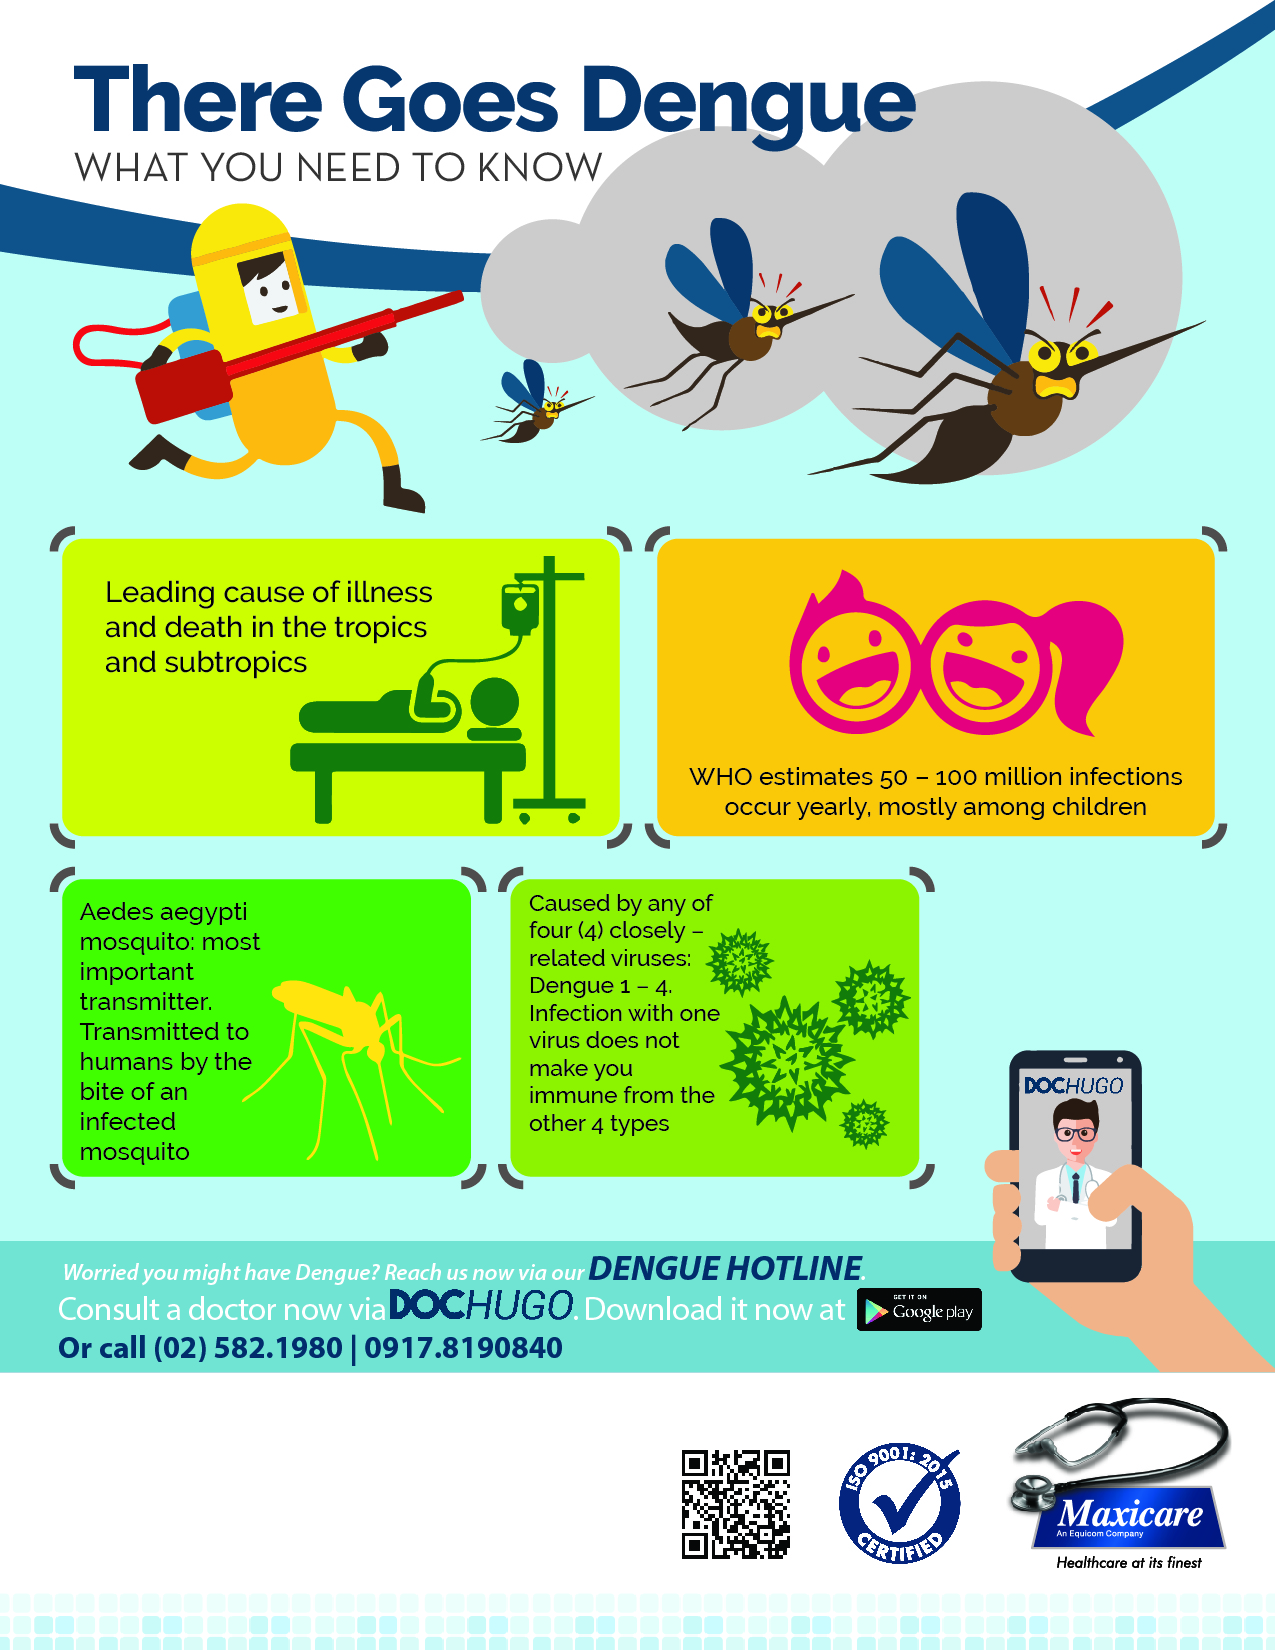 Dengue Fever Infects La Fte De >> There Goes Dengue What You Need To Know